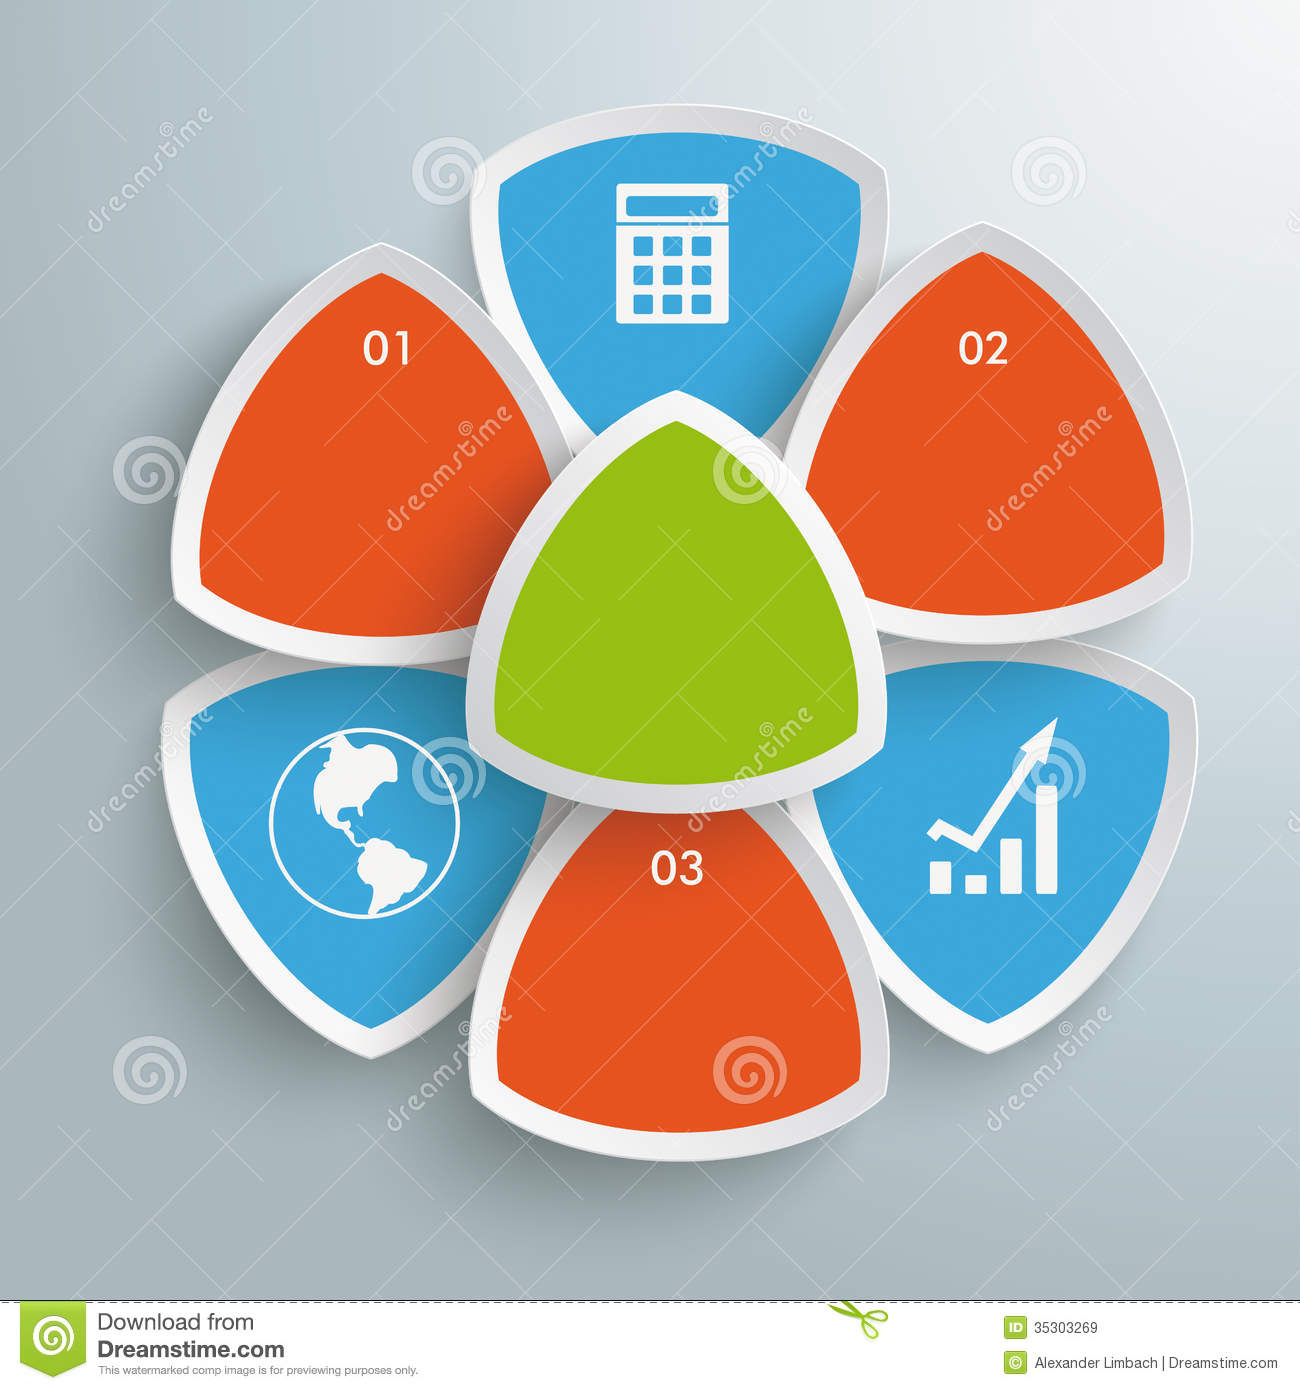 Round triangles flower infographic piad royalty free stock